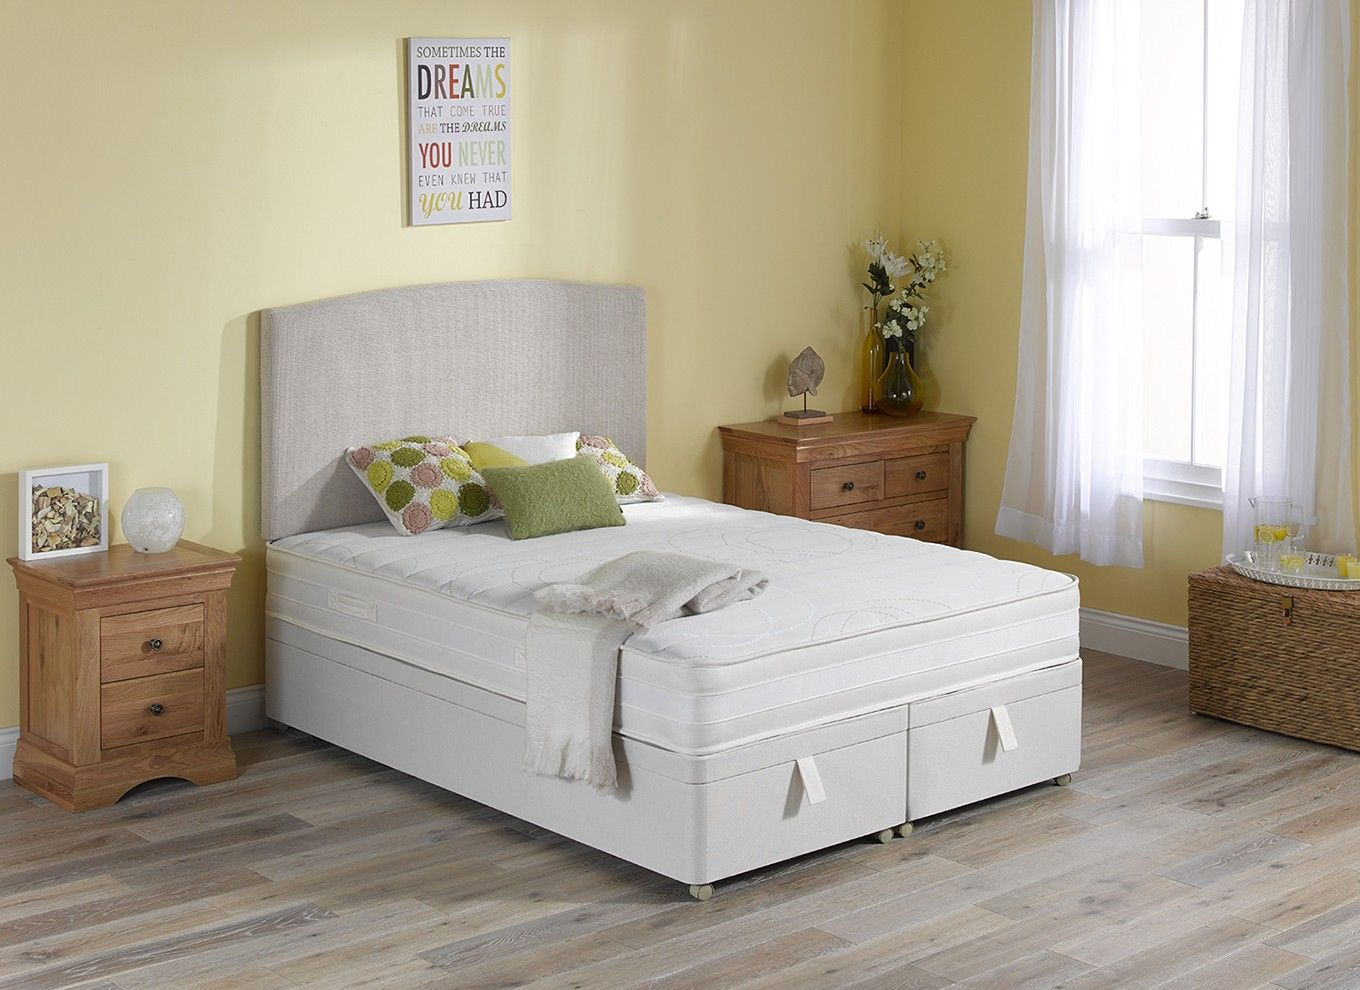 Fusion Pocket Spring Ottoman Bed - Firm   Bedroom   Pinterest